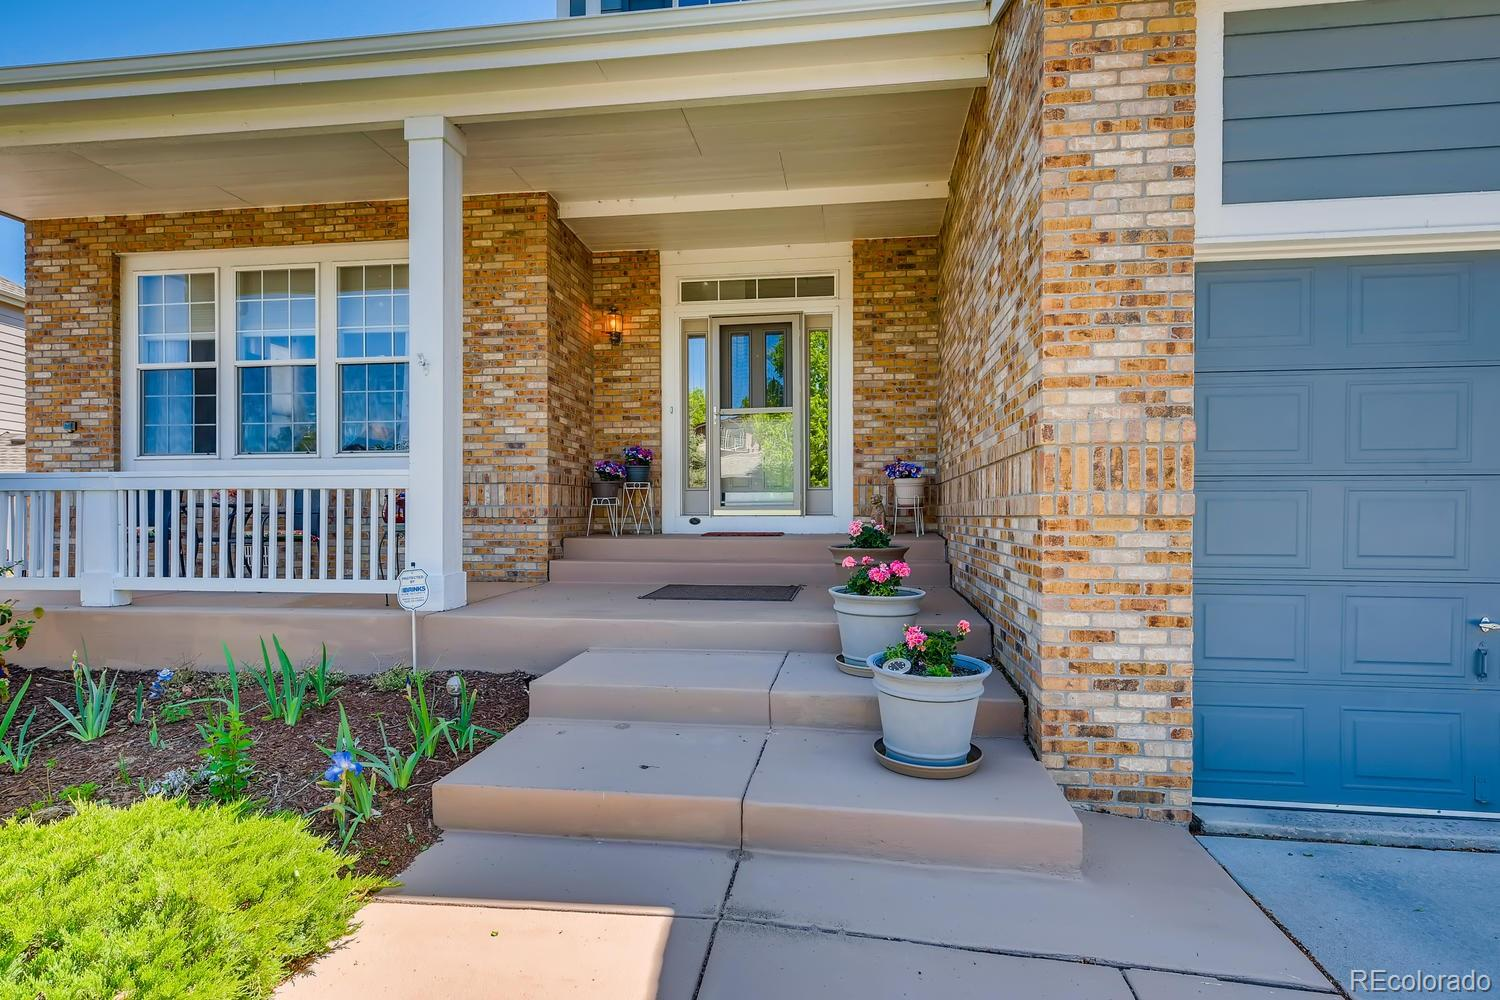 MLS# 4050127 - 2 - 10116 Mockingbird Lane, Highlands Ranch, CO 80129